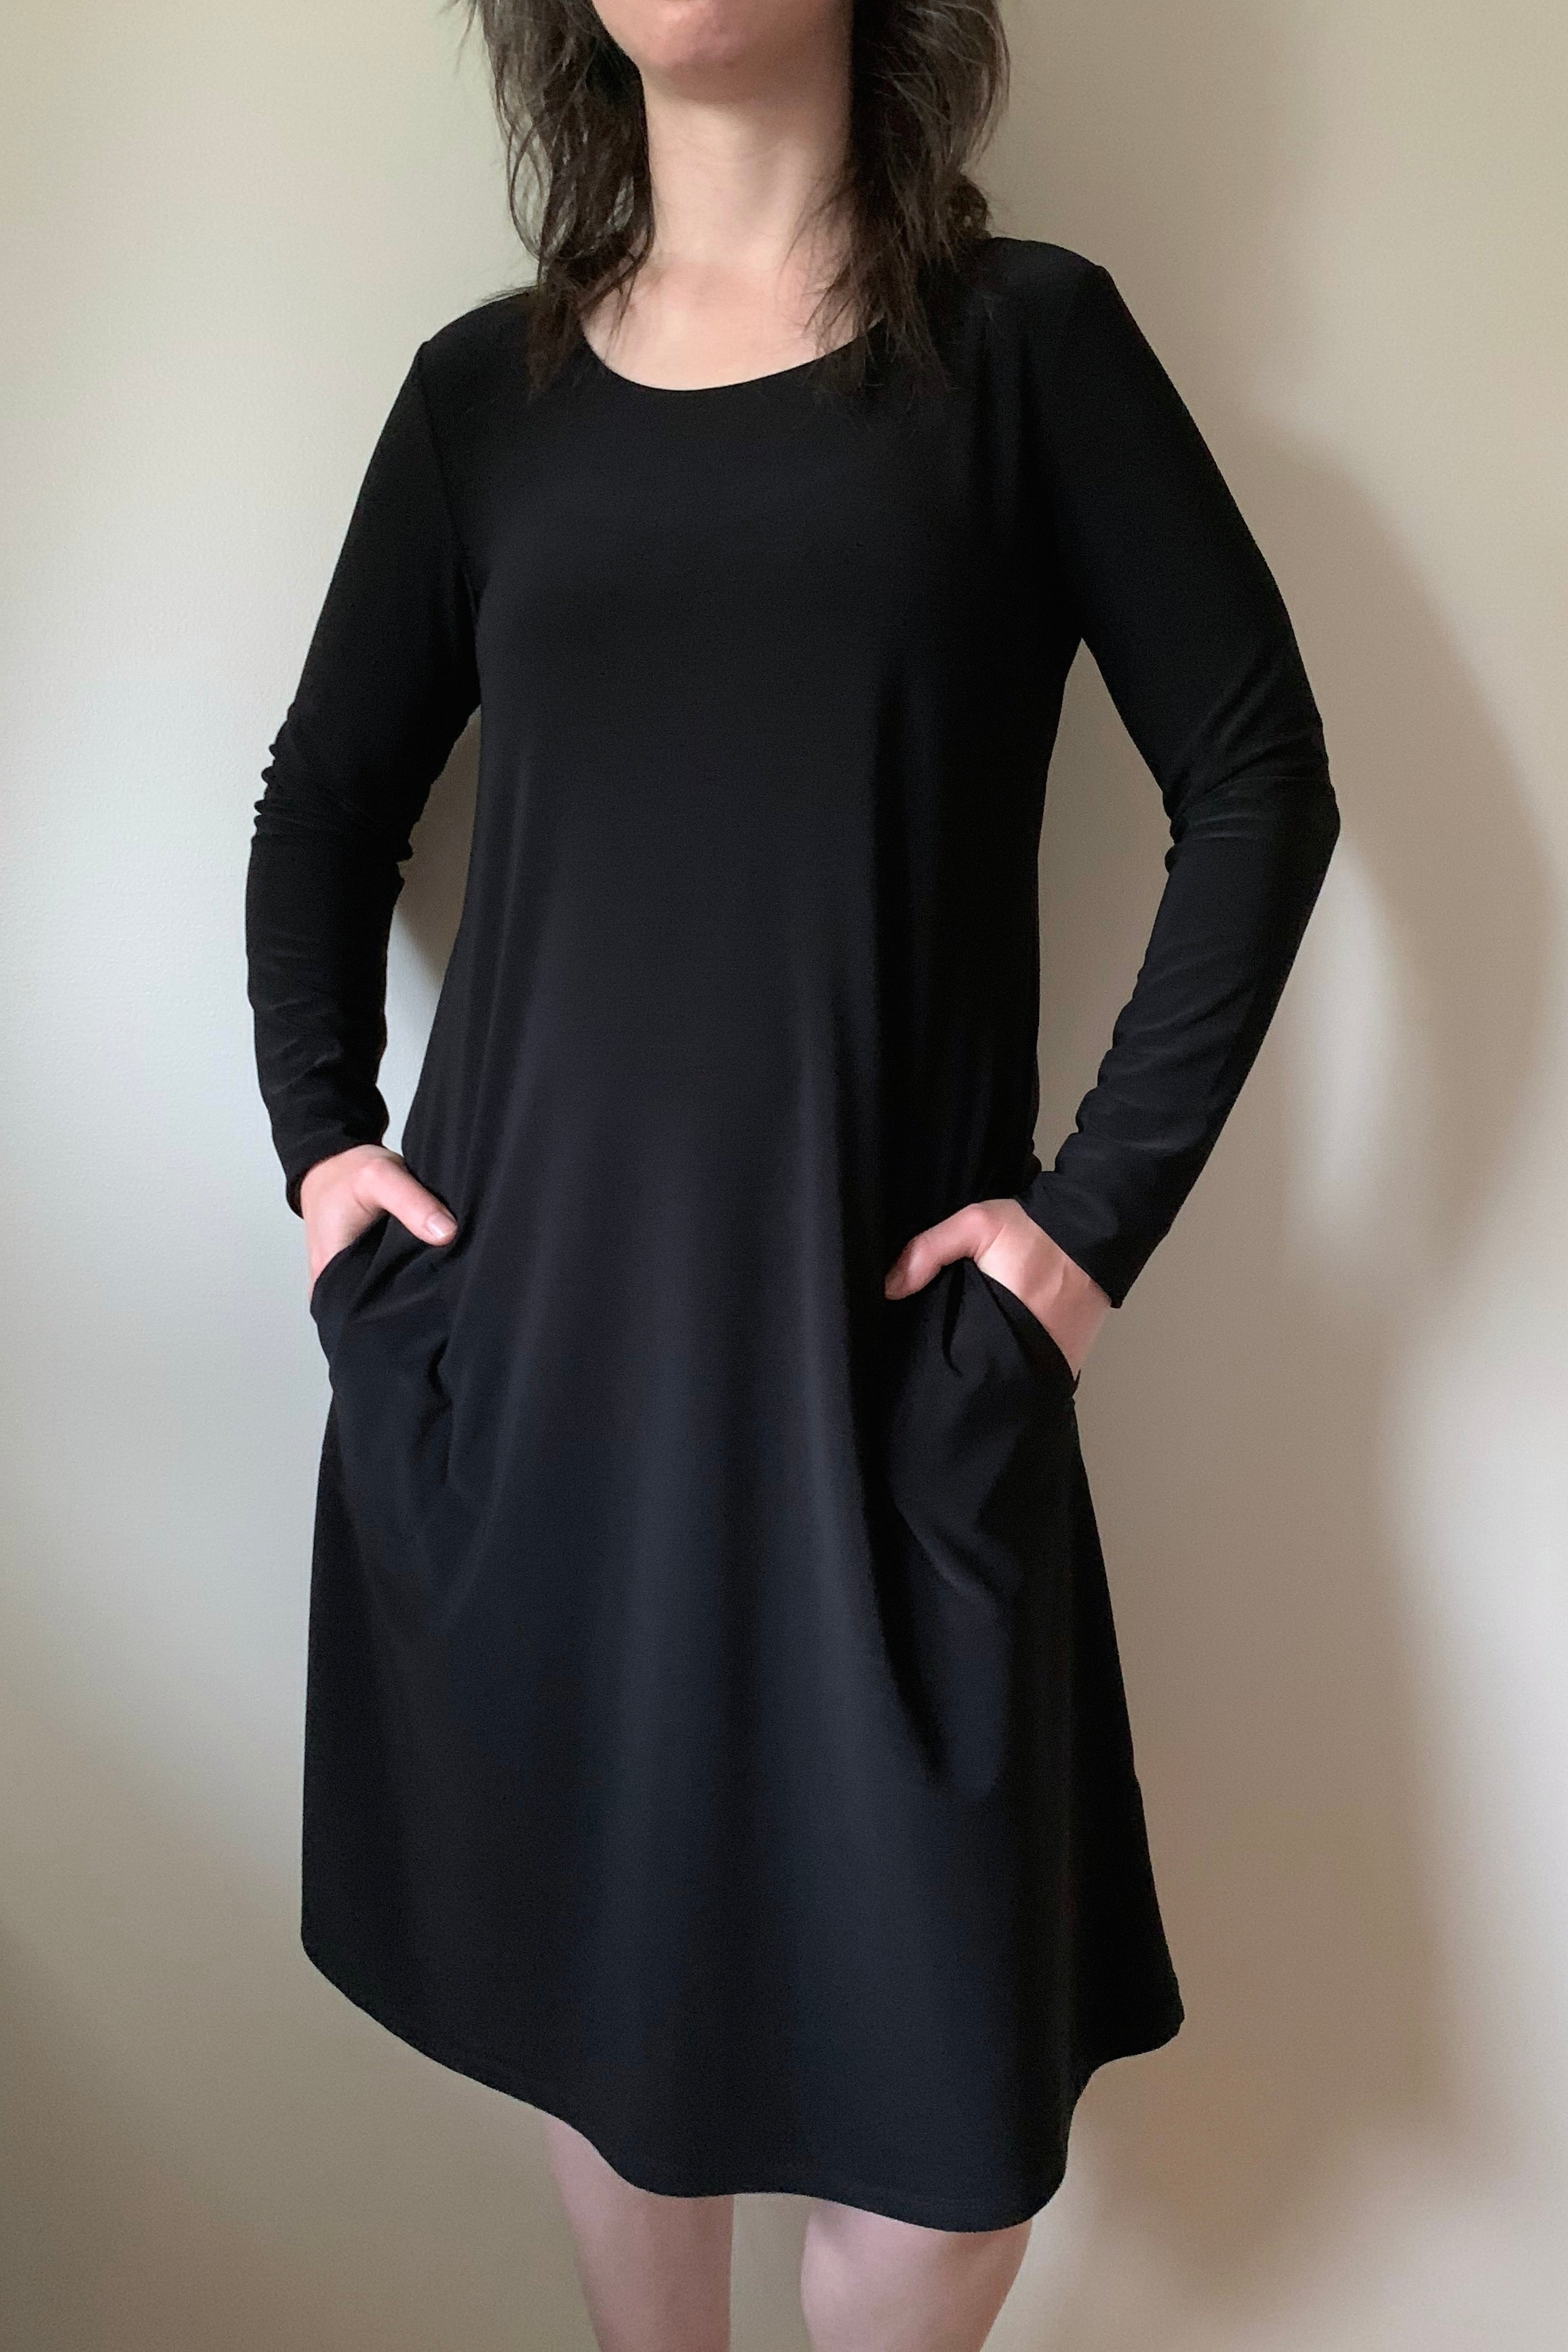 COMPLI K Black Knit Dress 30235Y FW2020/2021 (front view, pockets)